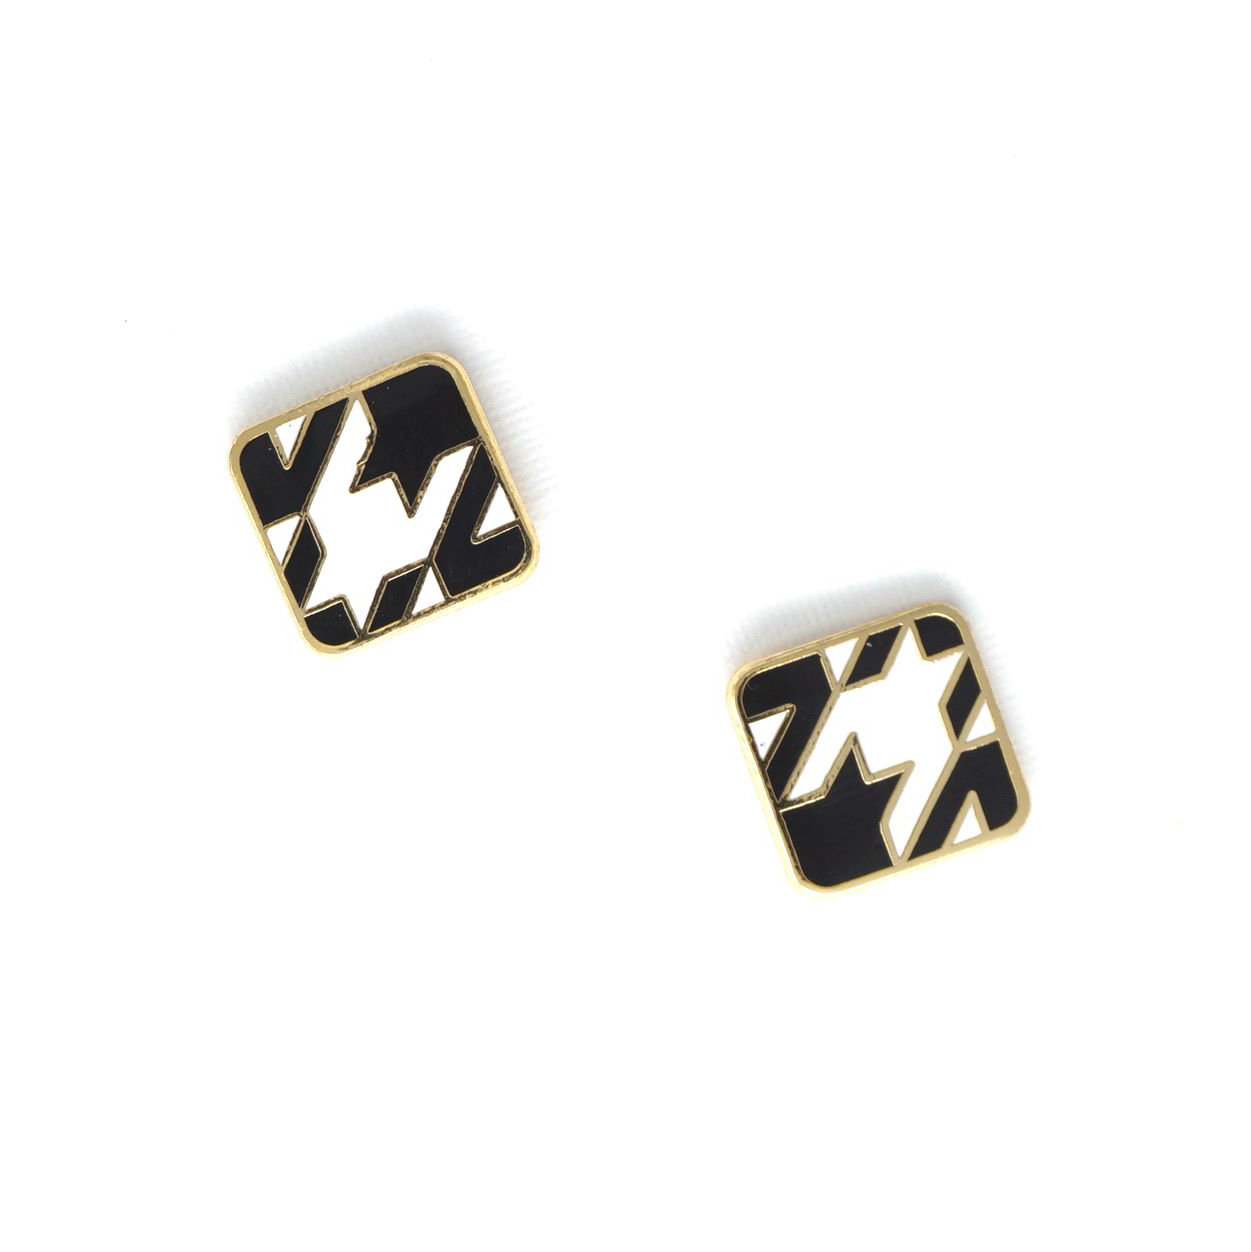 Miss Modi presents Handcrafted Black Houndstooth Enamel Stud Earrings